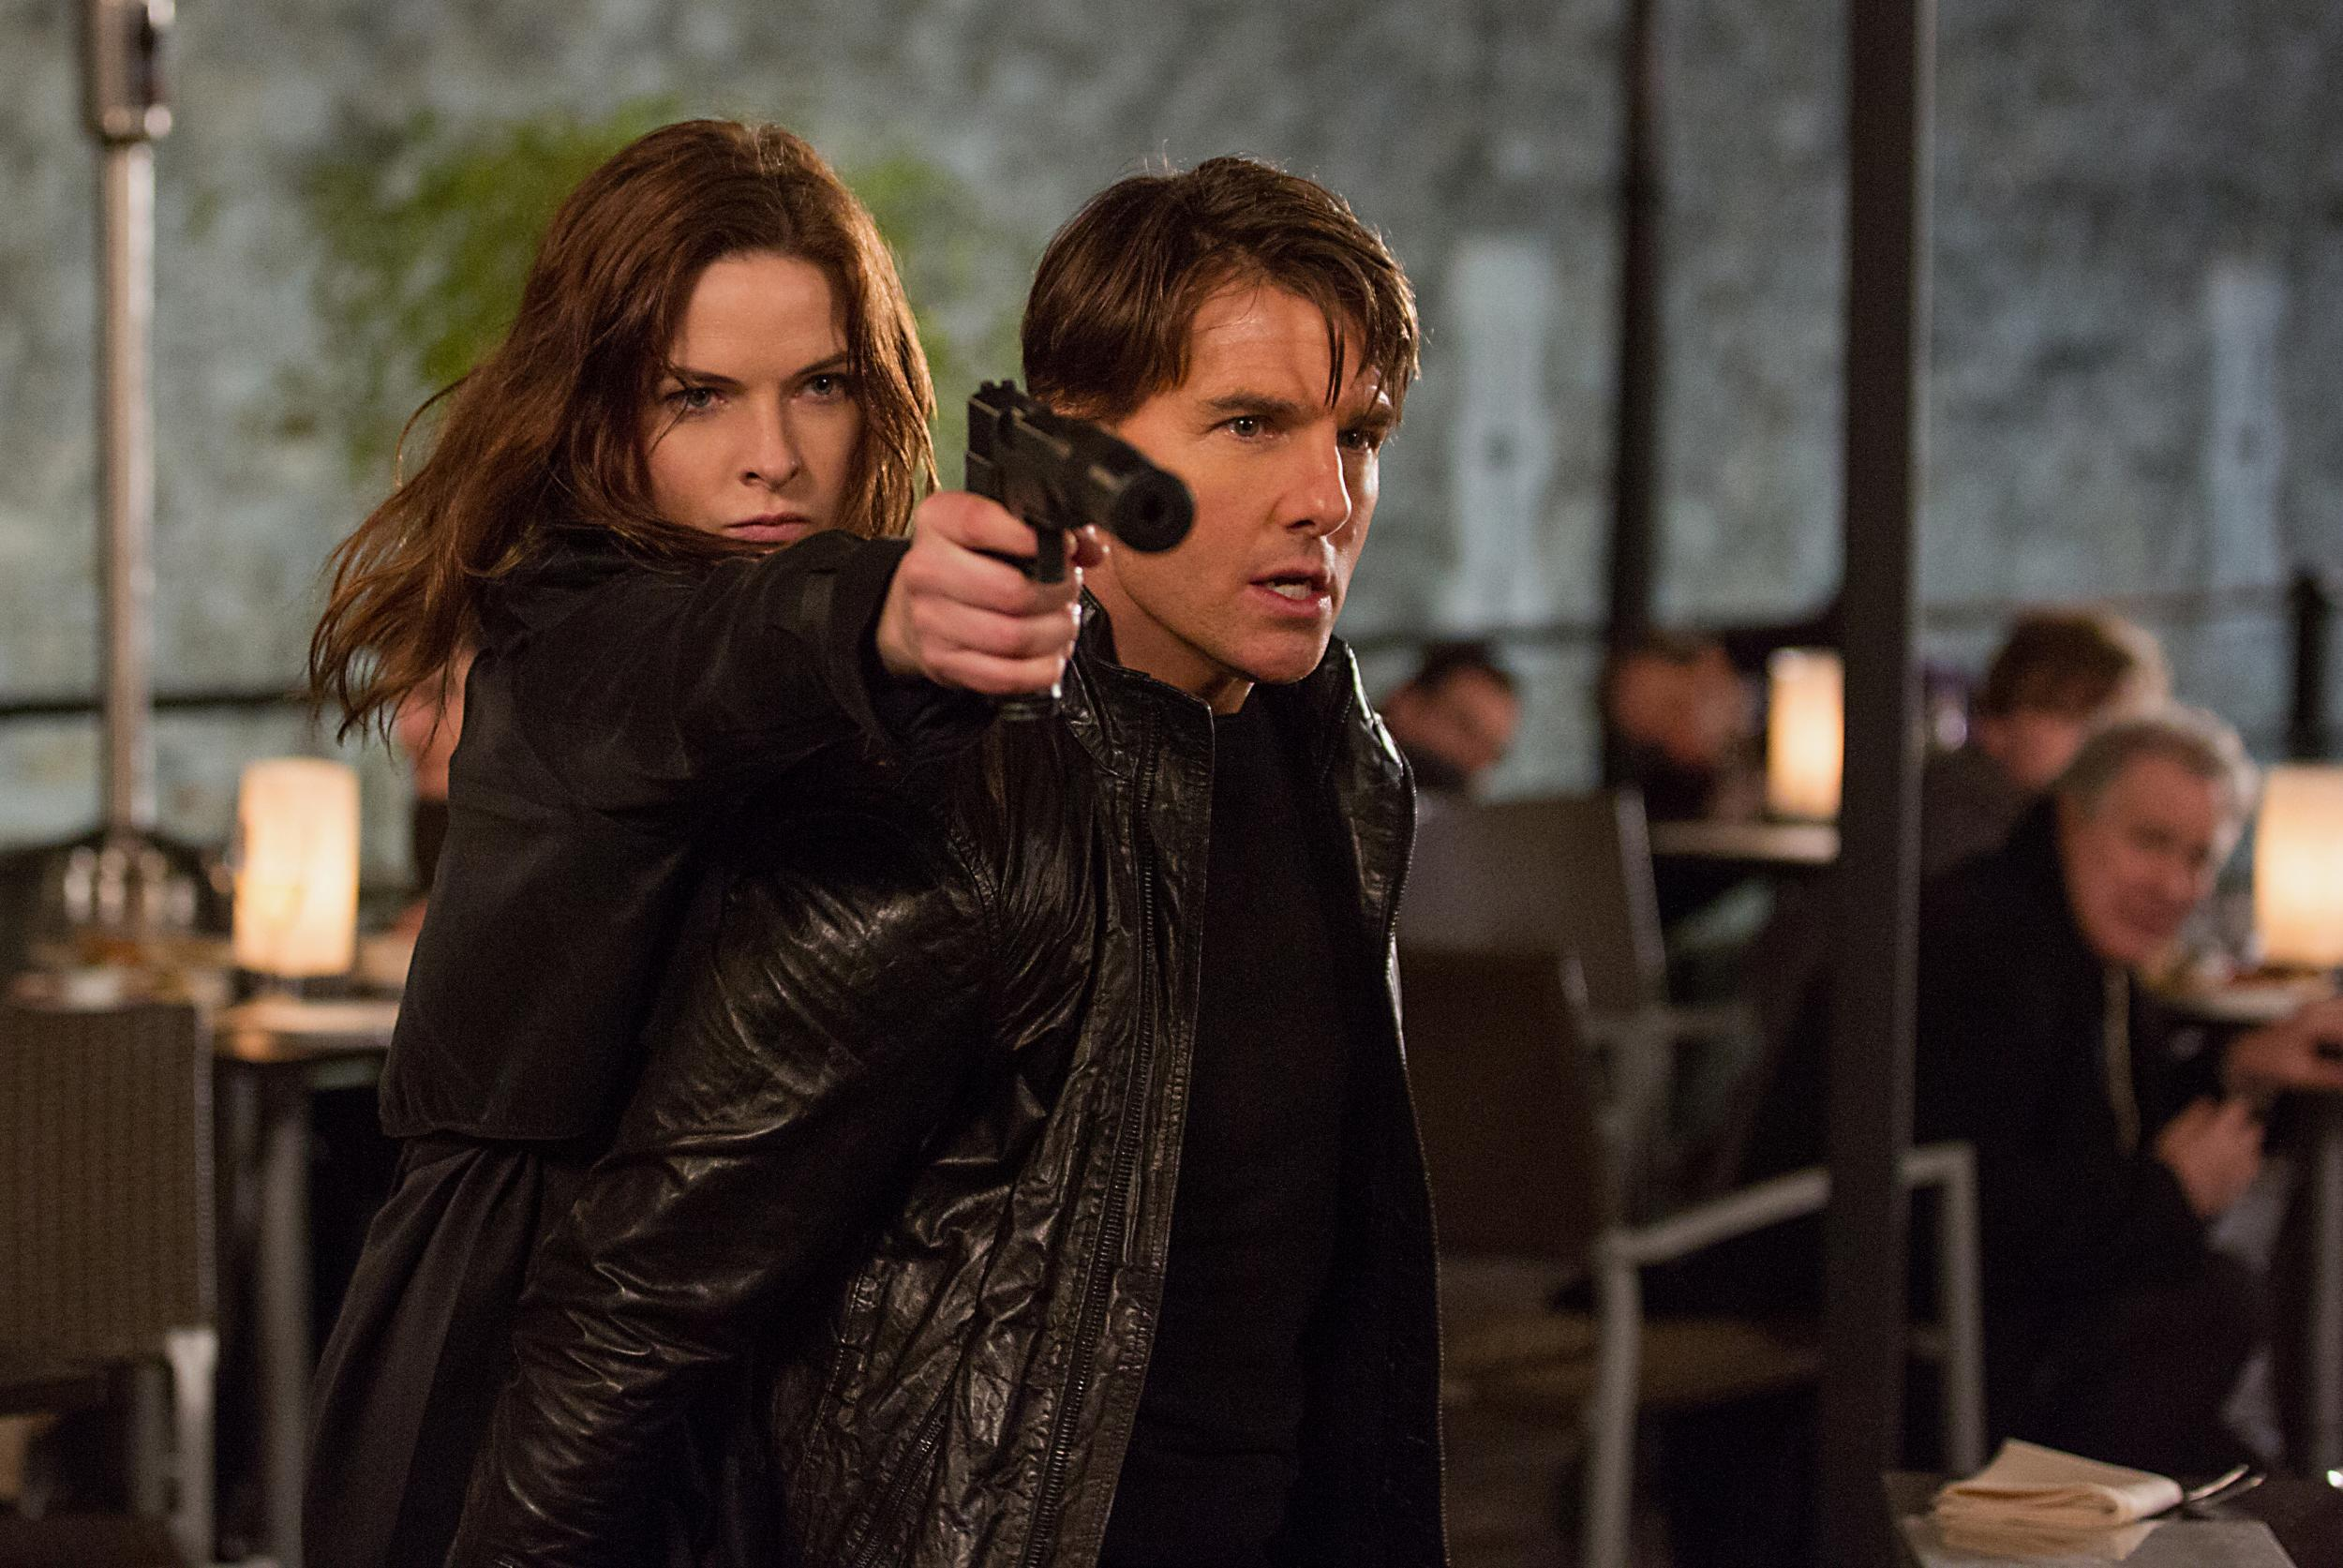 Tom Cruise S Mission Impossible 7 Forced To Stop Filming In Italy Amid Coronavirus Fears The Independent Independent